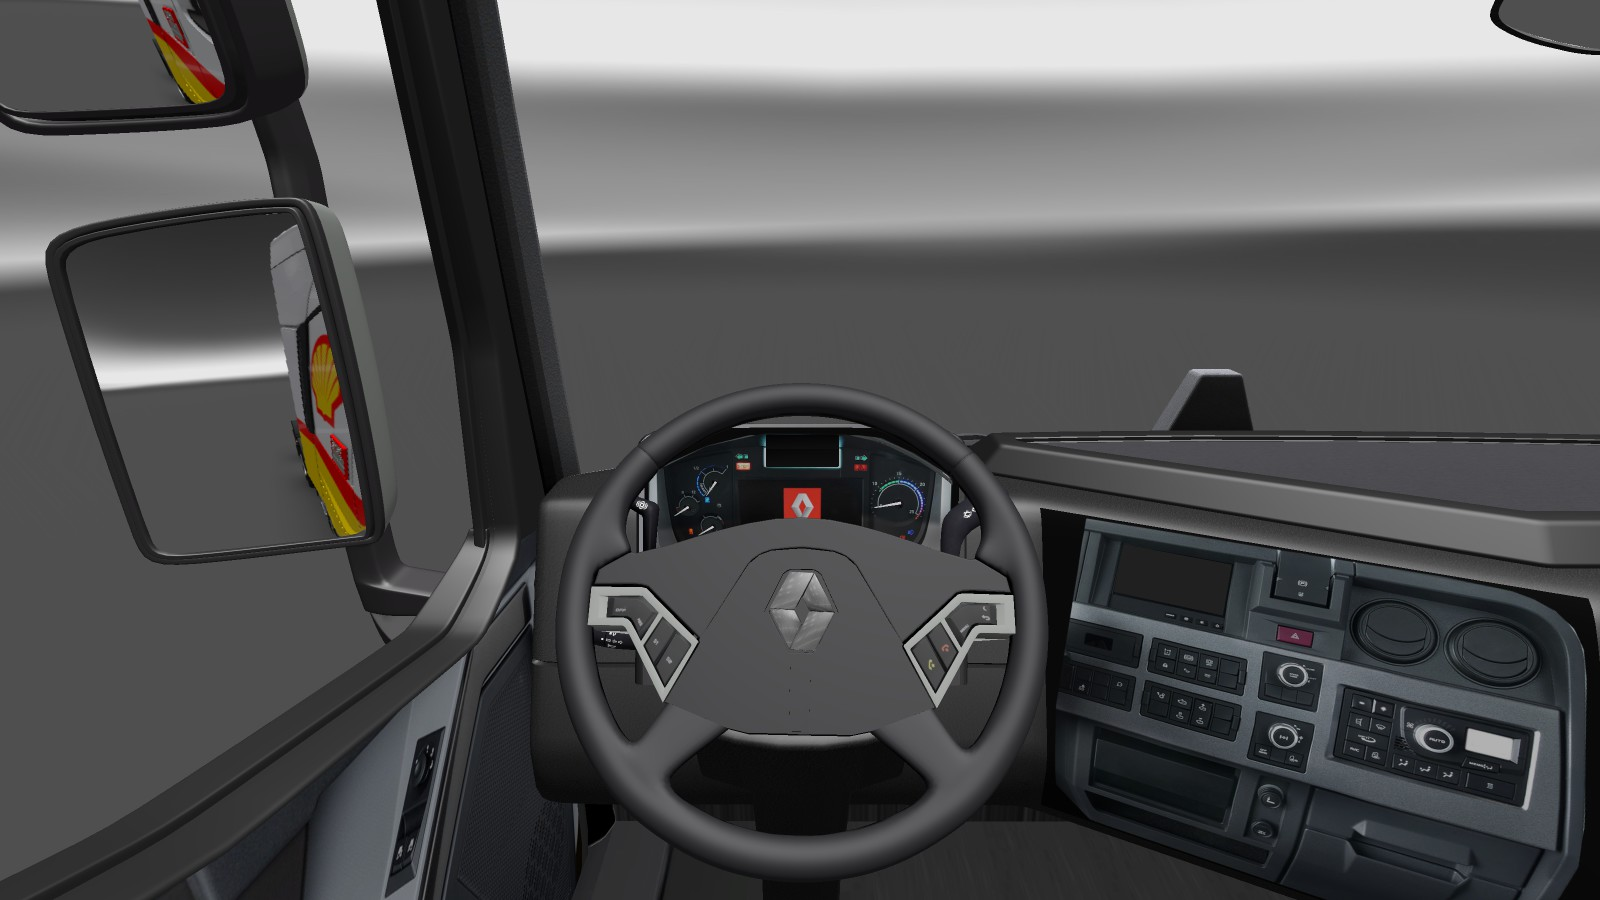 Ets2 brazilian mods renault t range by stas556 fire for Renault range t interieur